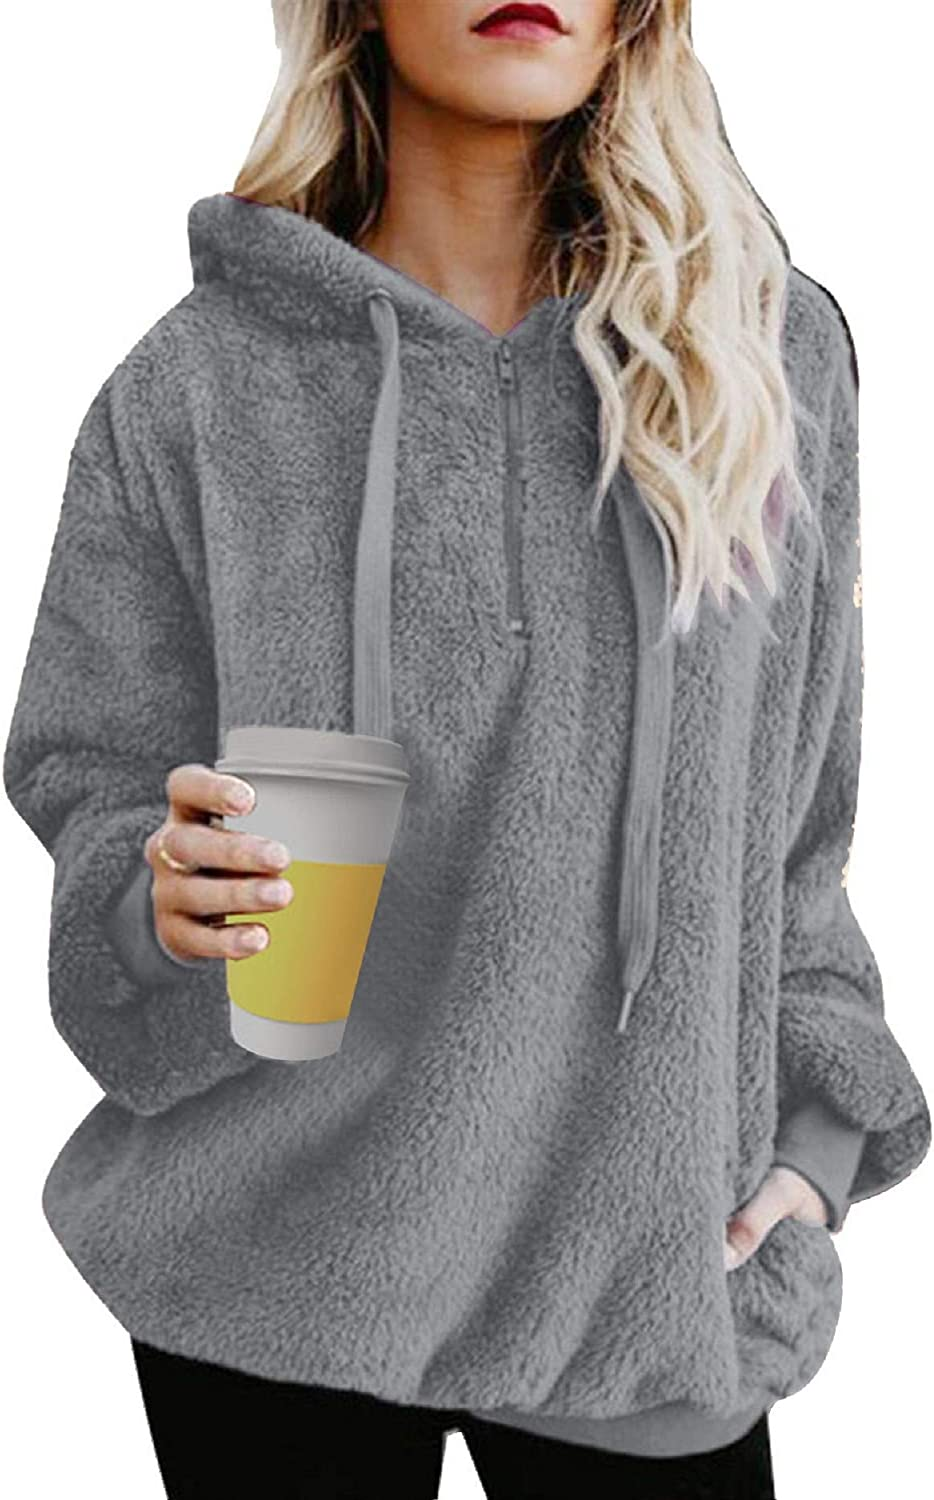 UMIPUBO Womens Sweatshirt Fuzzy Casual Loose Velvet Sweater Long Sleeve Teddy Fleece Hoodies with Pockets Hoodie Drawstring Pullover Jumpers Outwear Coat for Women